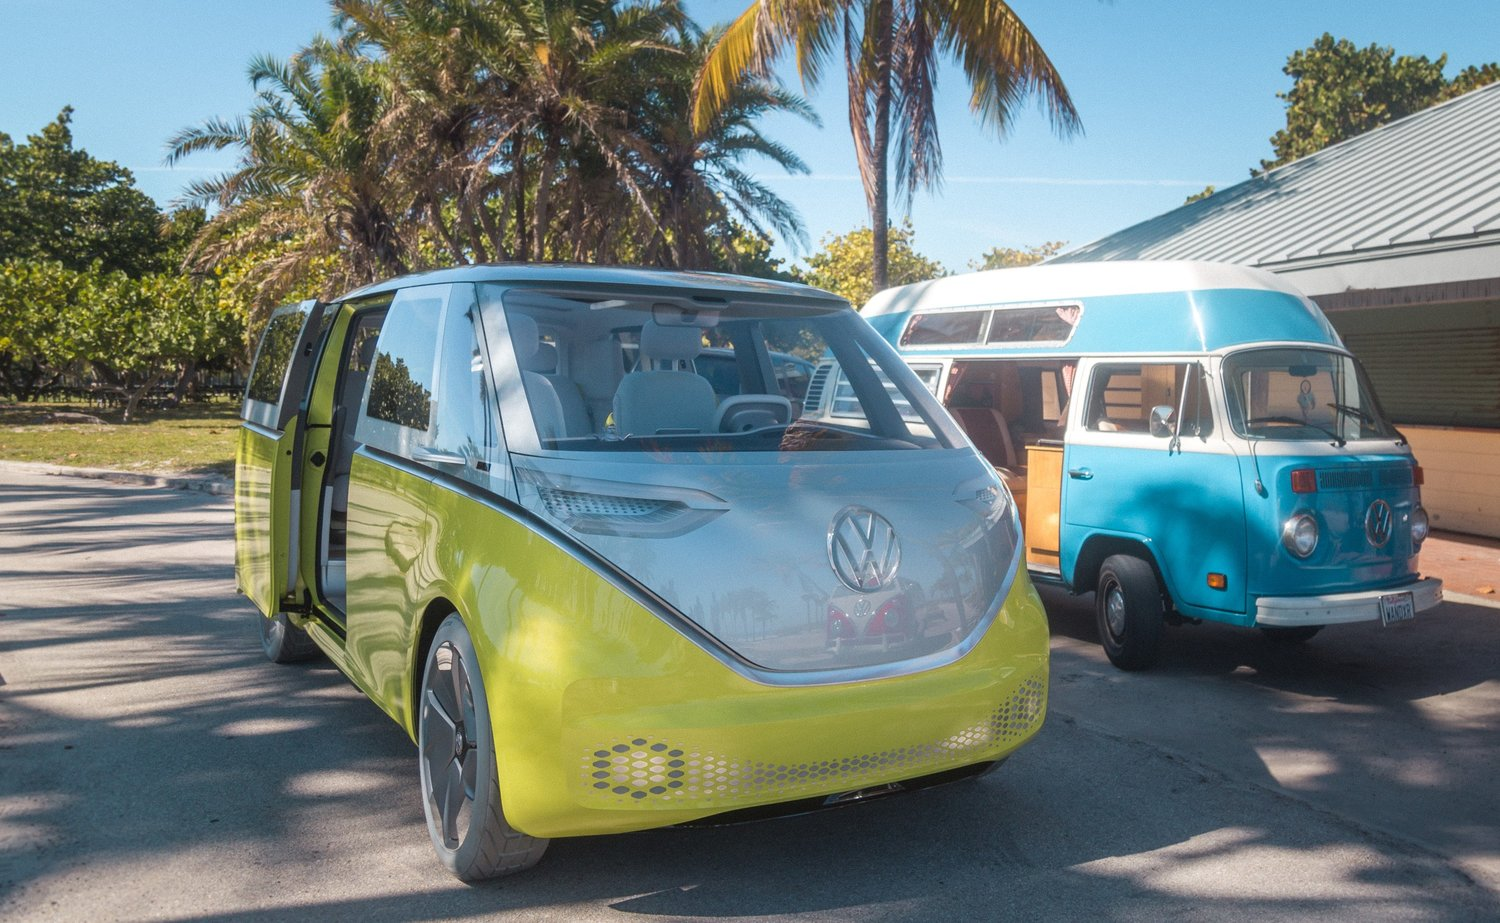 VW is rethinking the VW love wagon of the 60's with a fully electric autonomous version.